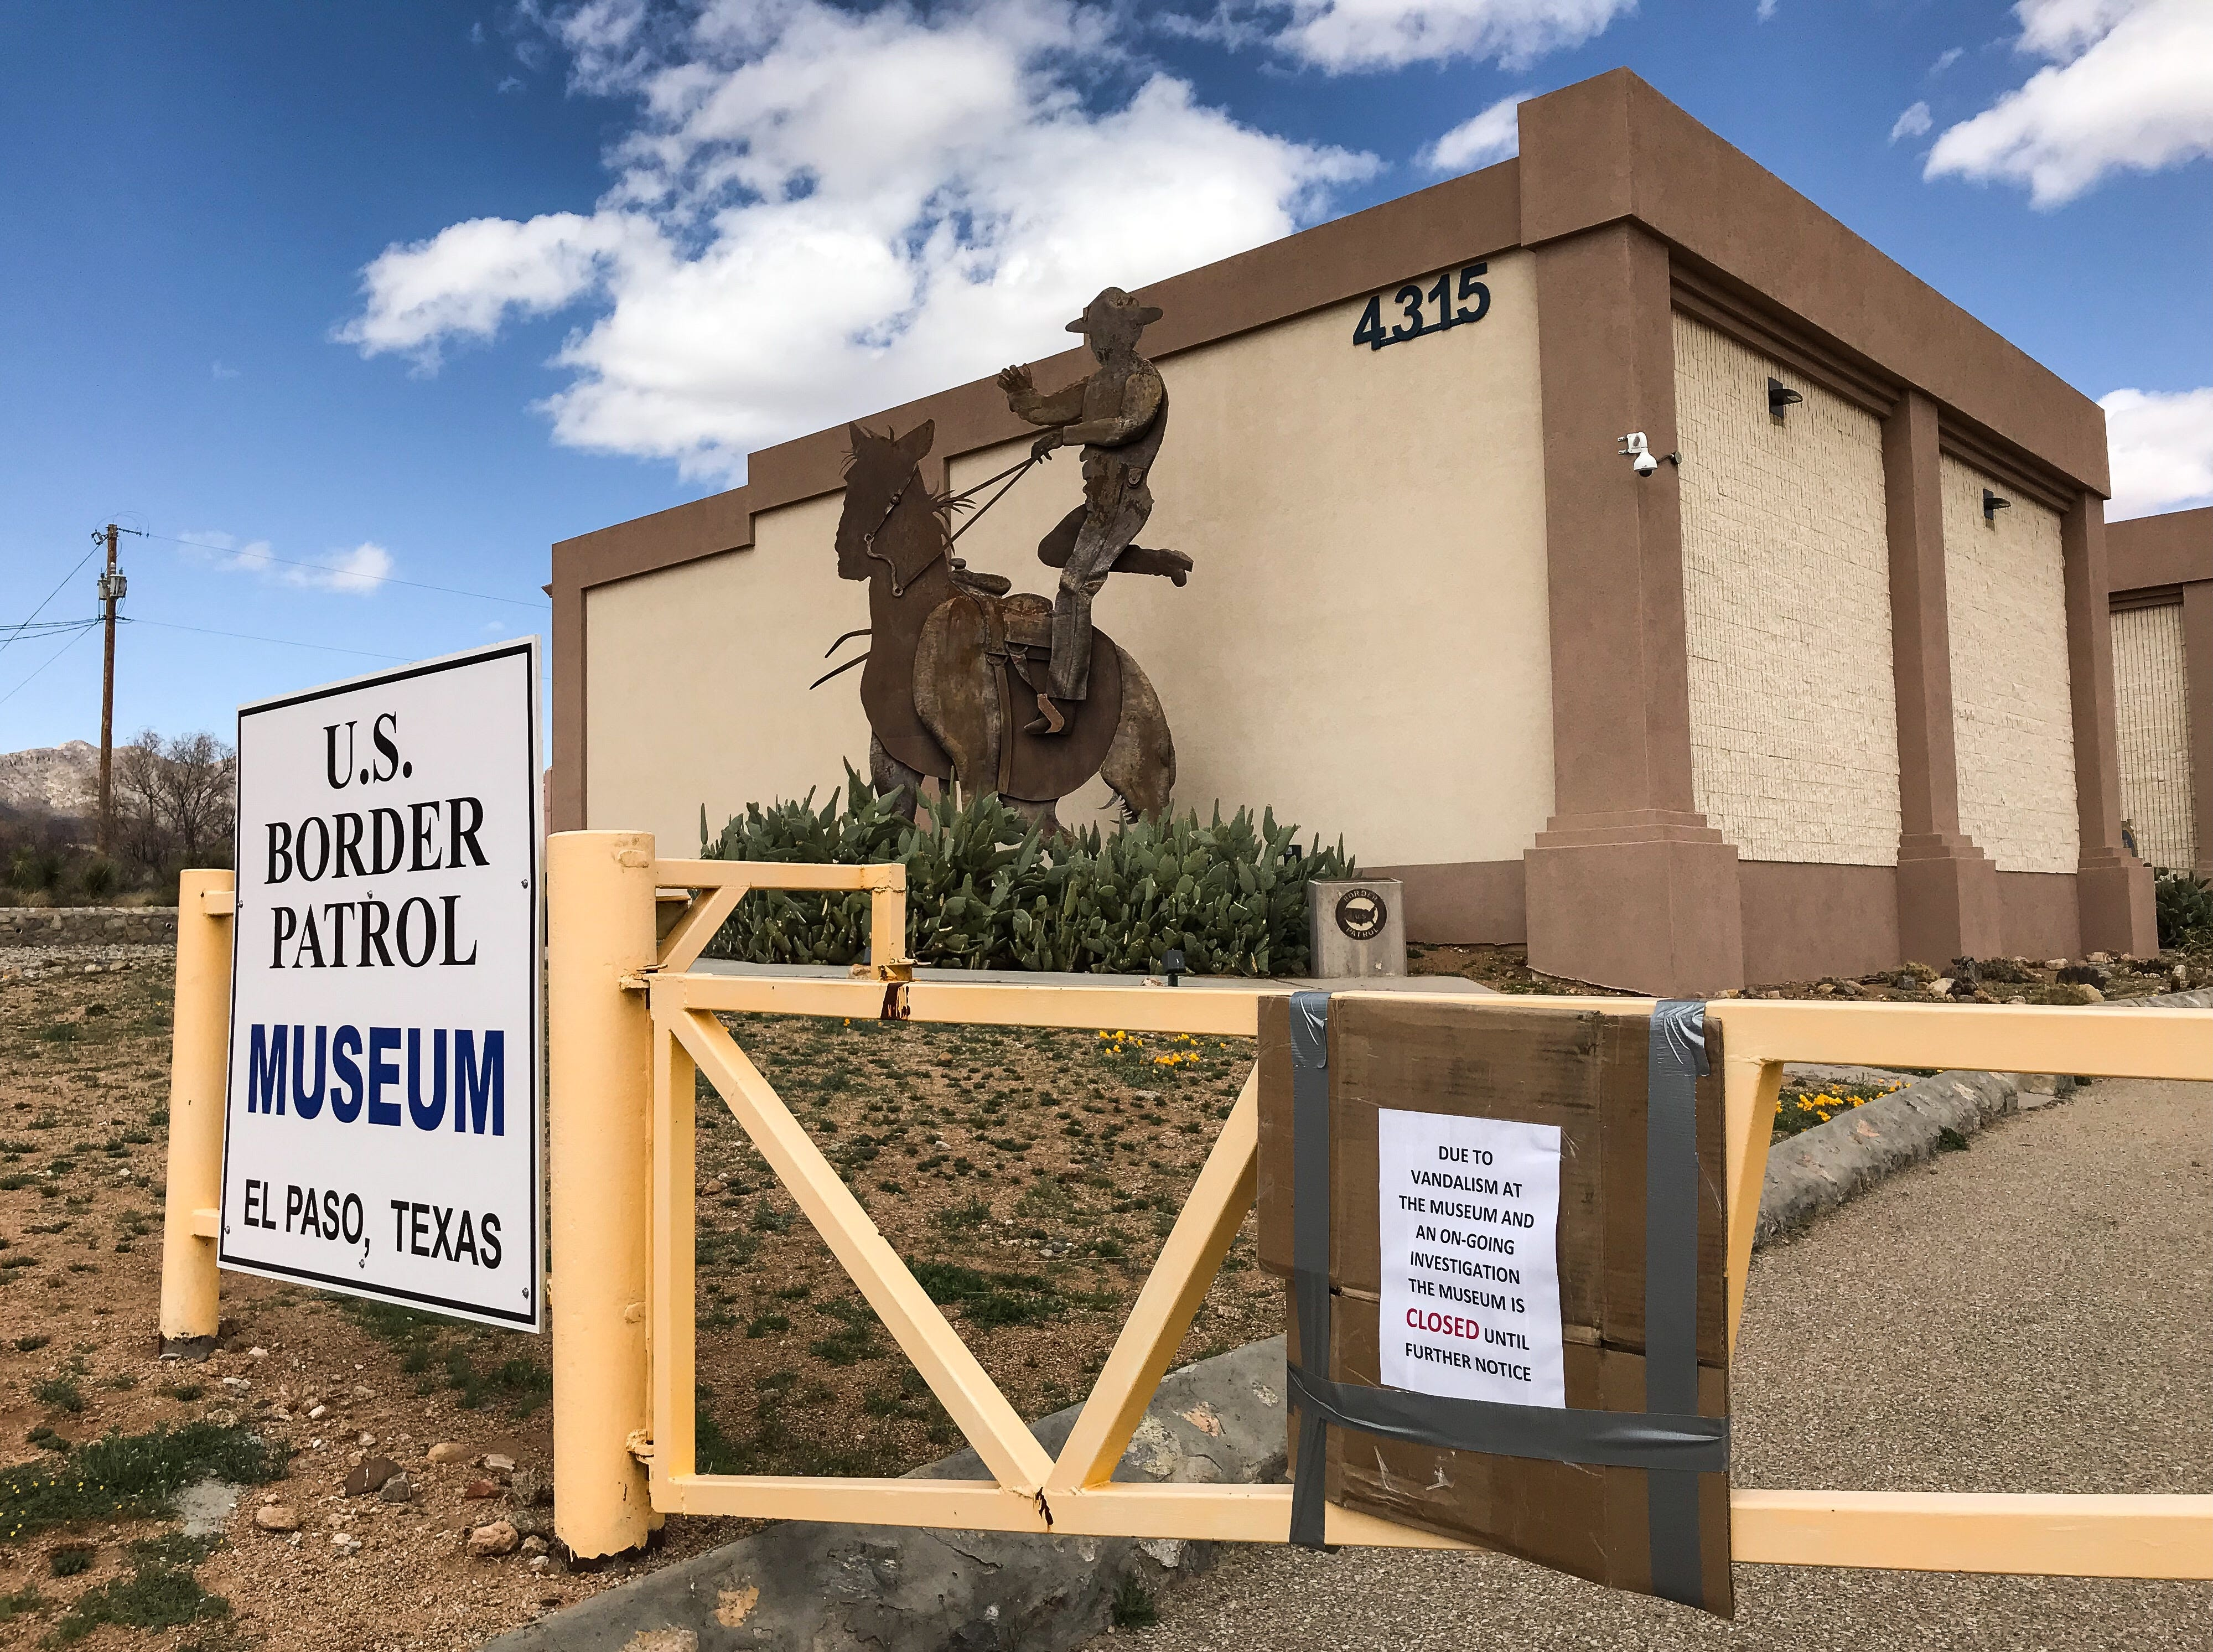 National Border Patrol Museum closes due to damage after migrant advocates'  protest